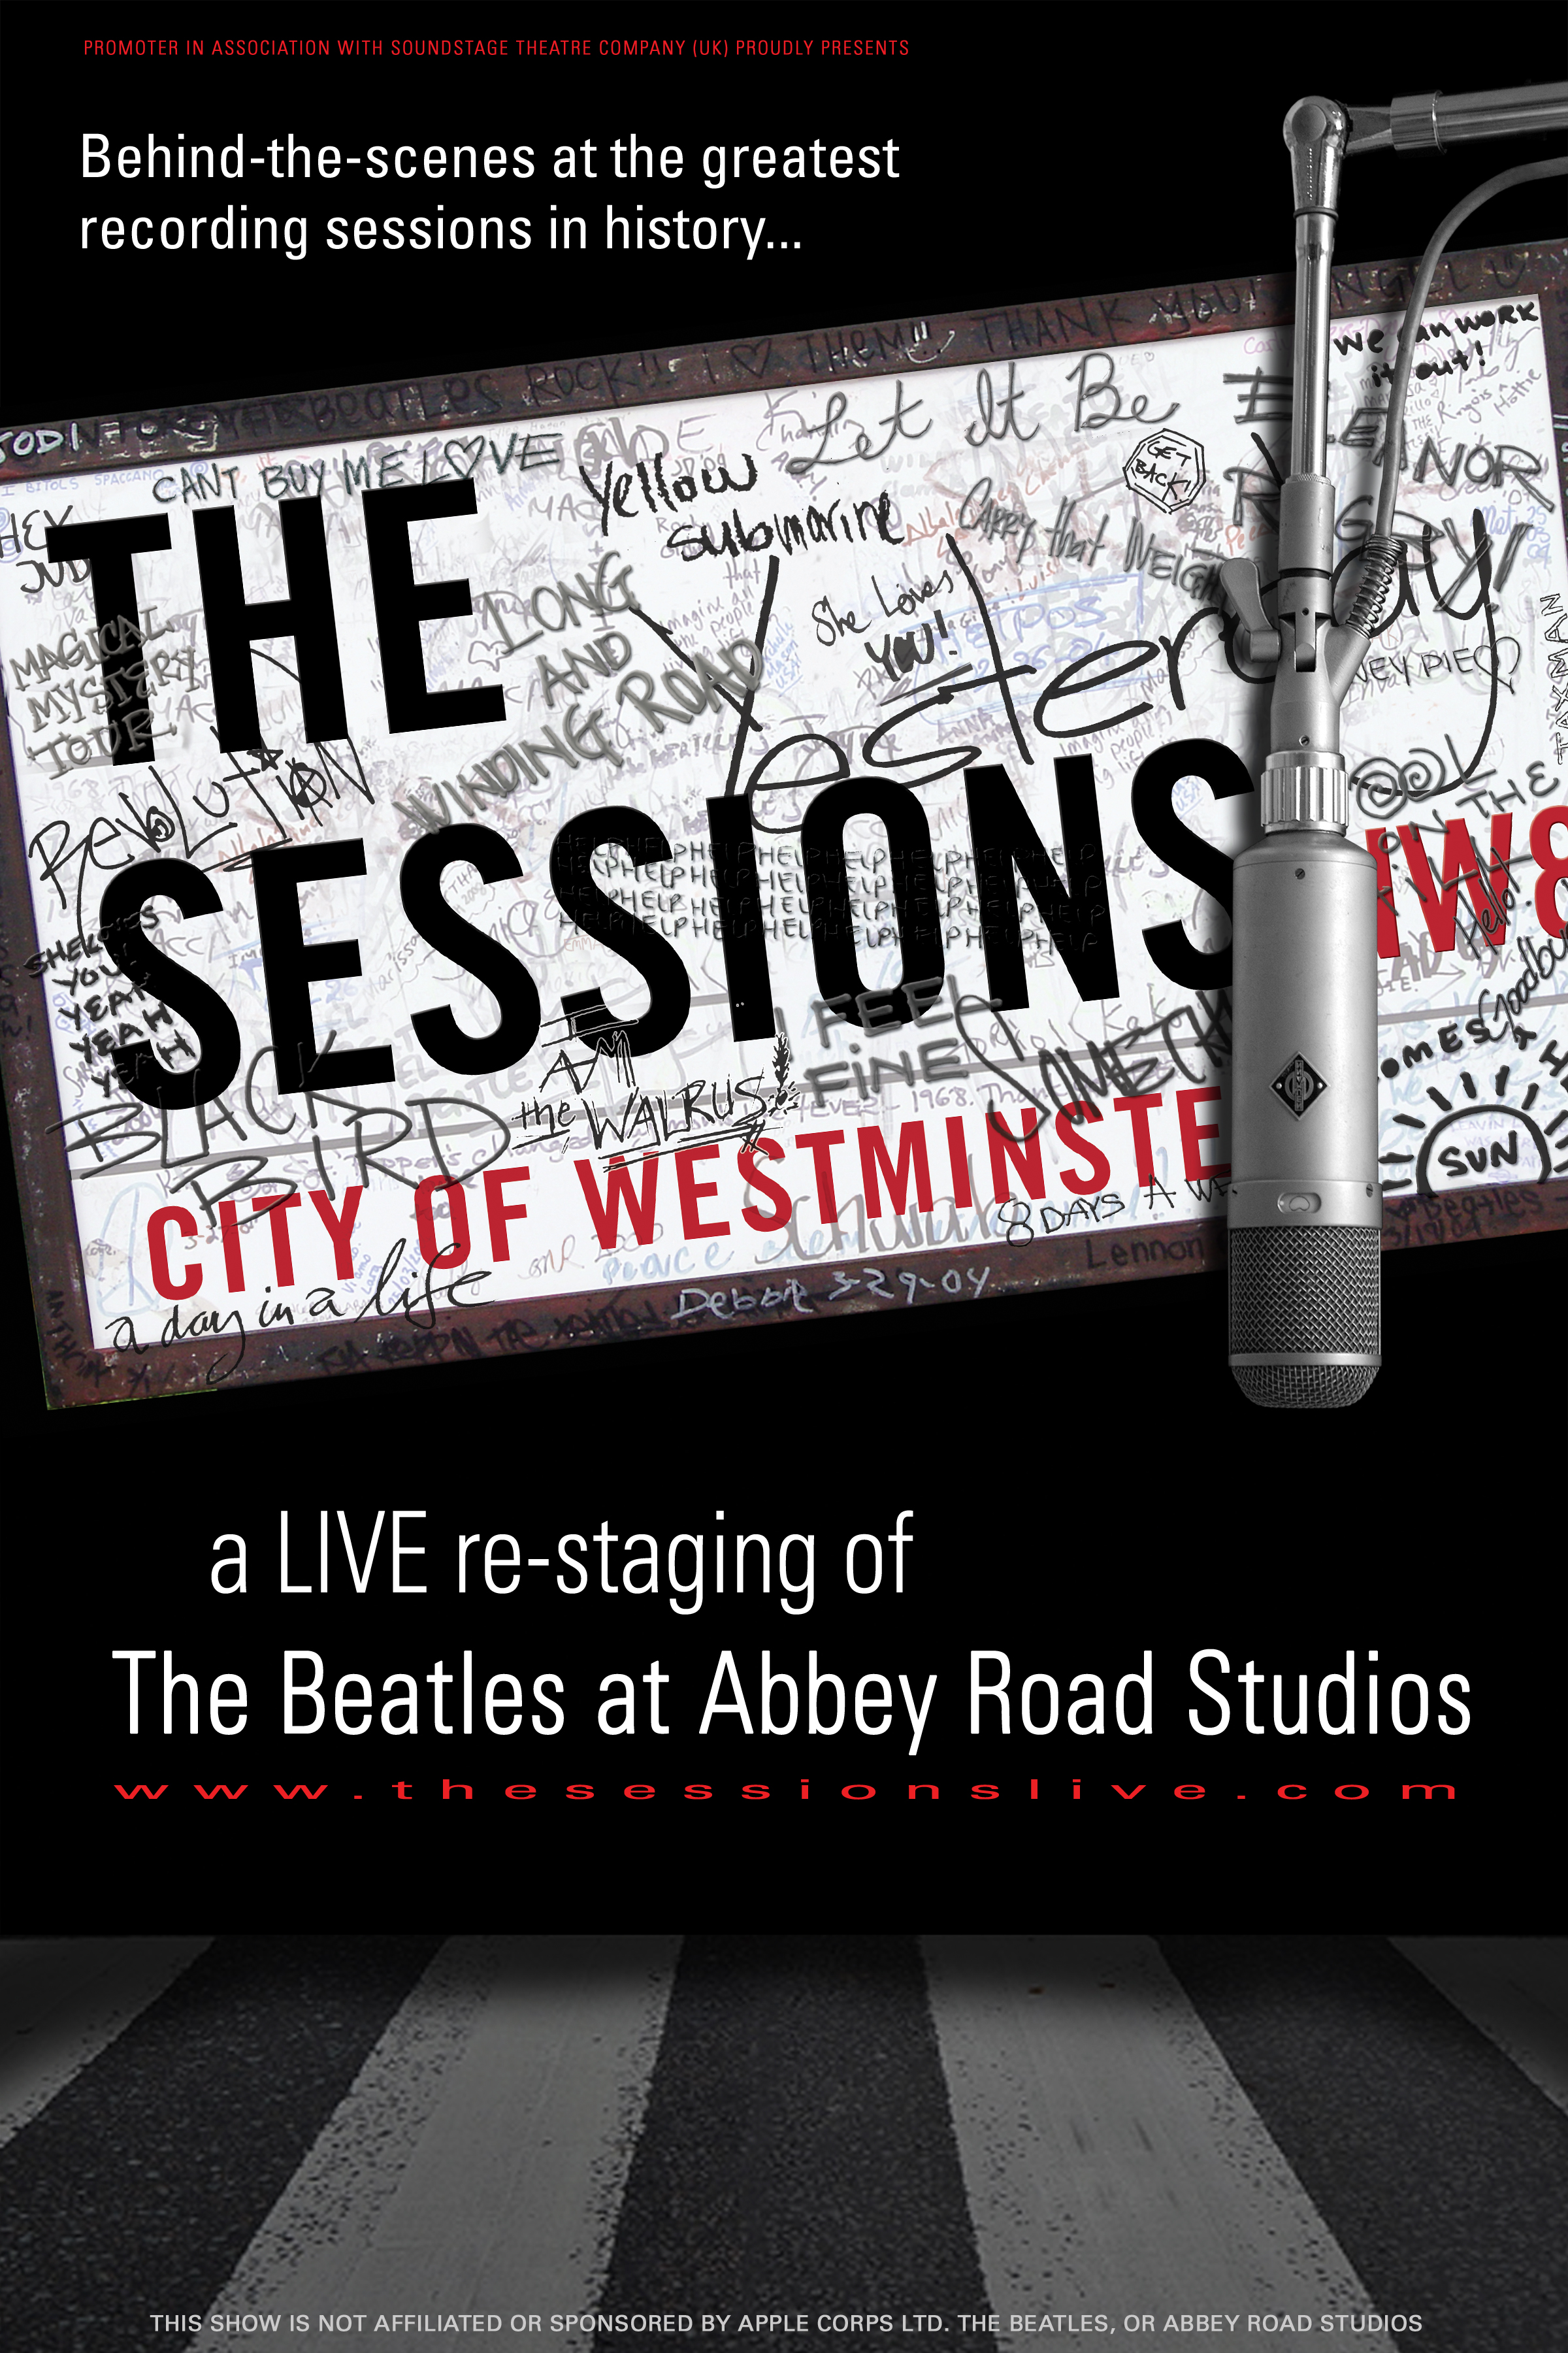 THE SESSIONS - THE BEATLES AT ABBEY ROAD   A LIVE re-staging of THE BEATLES recording sessions at Abbey Road Studios